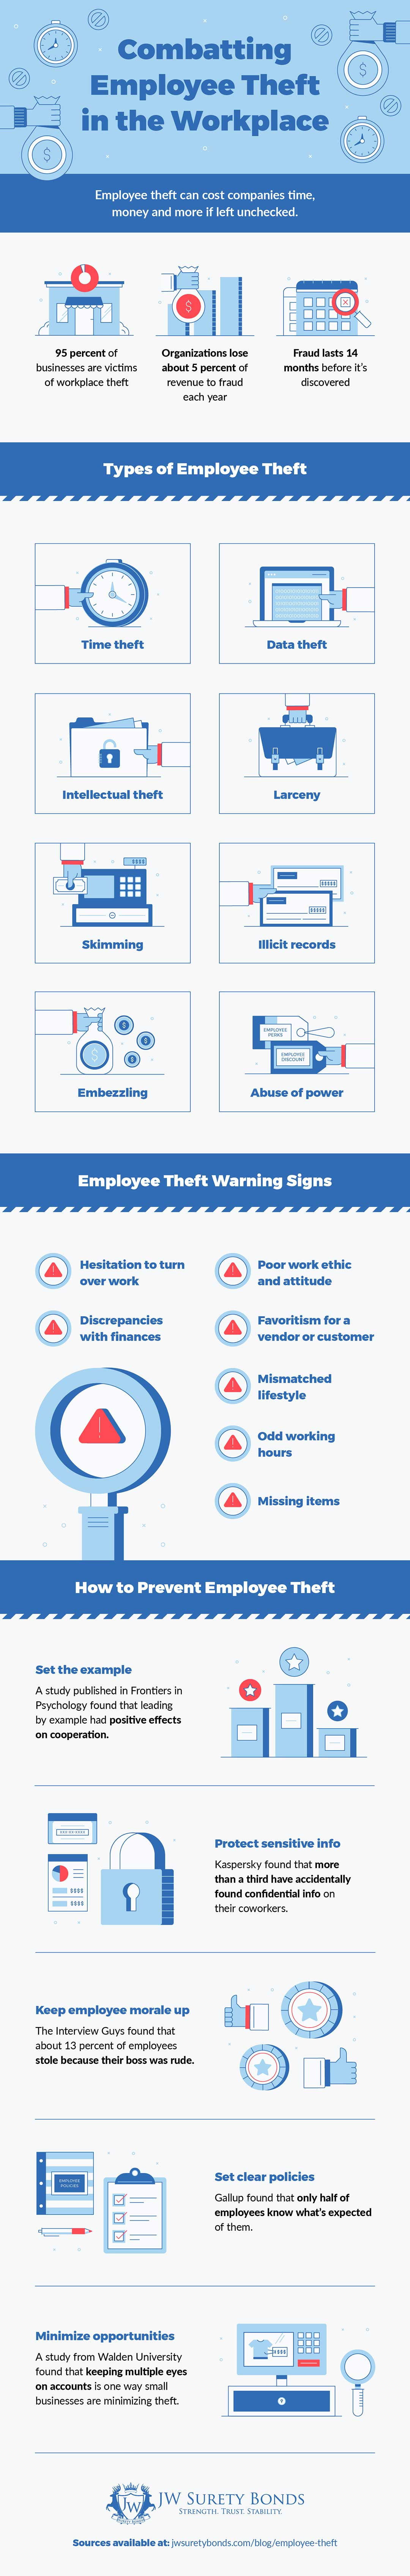 How to Spot and Prevent Employee Theft